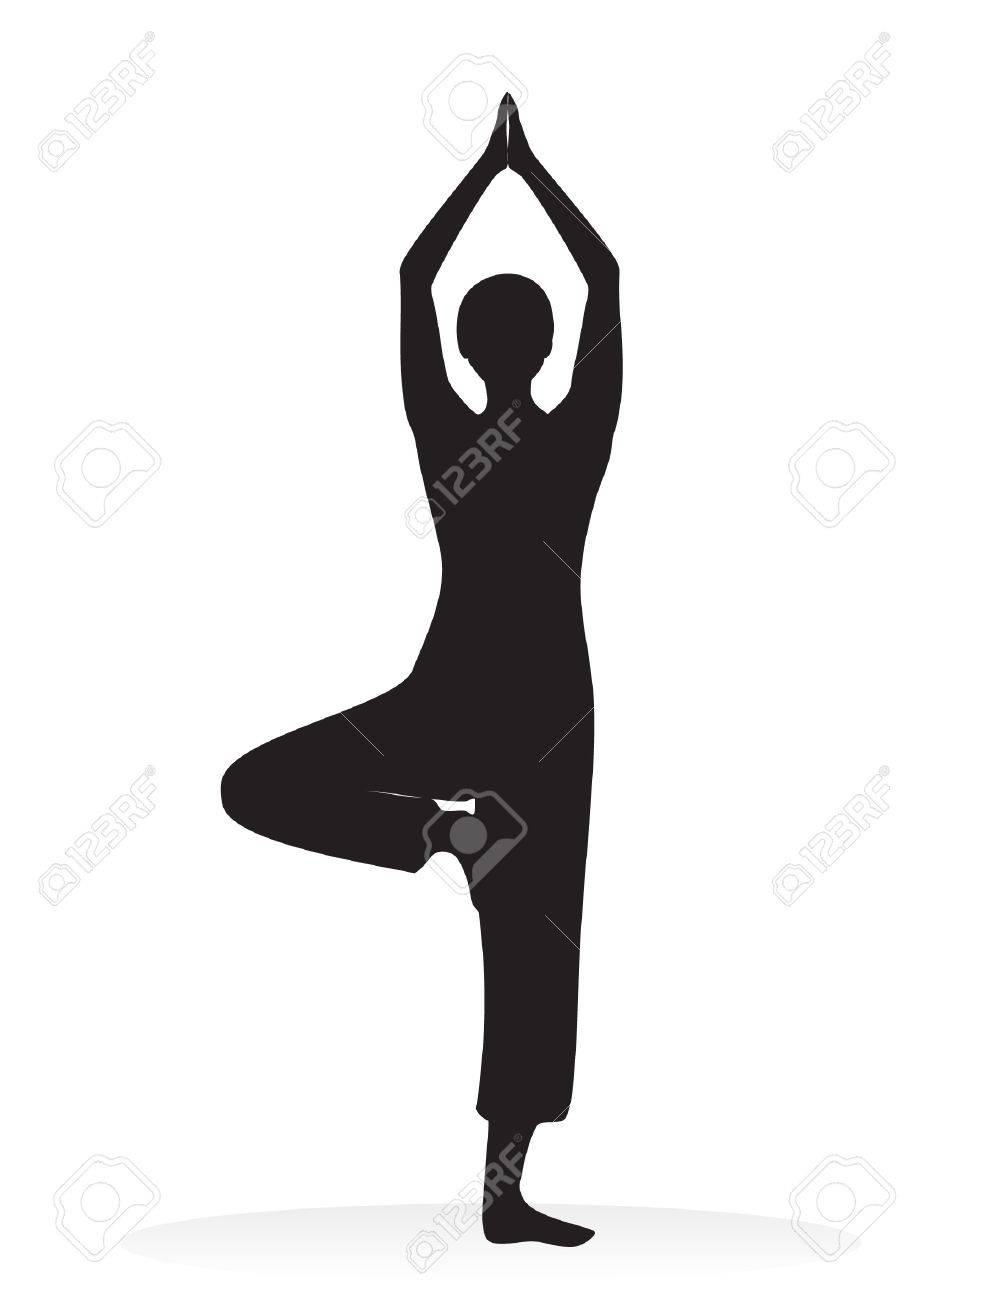 Yoga Vector Silhouette Royalty Free Cliparts, Vectors, And Stock ...